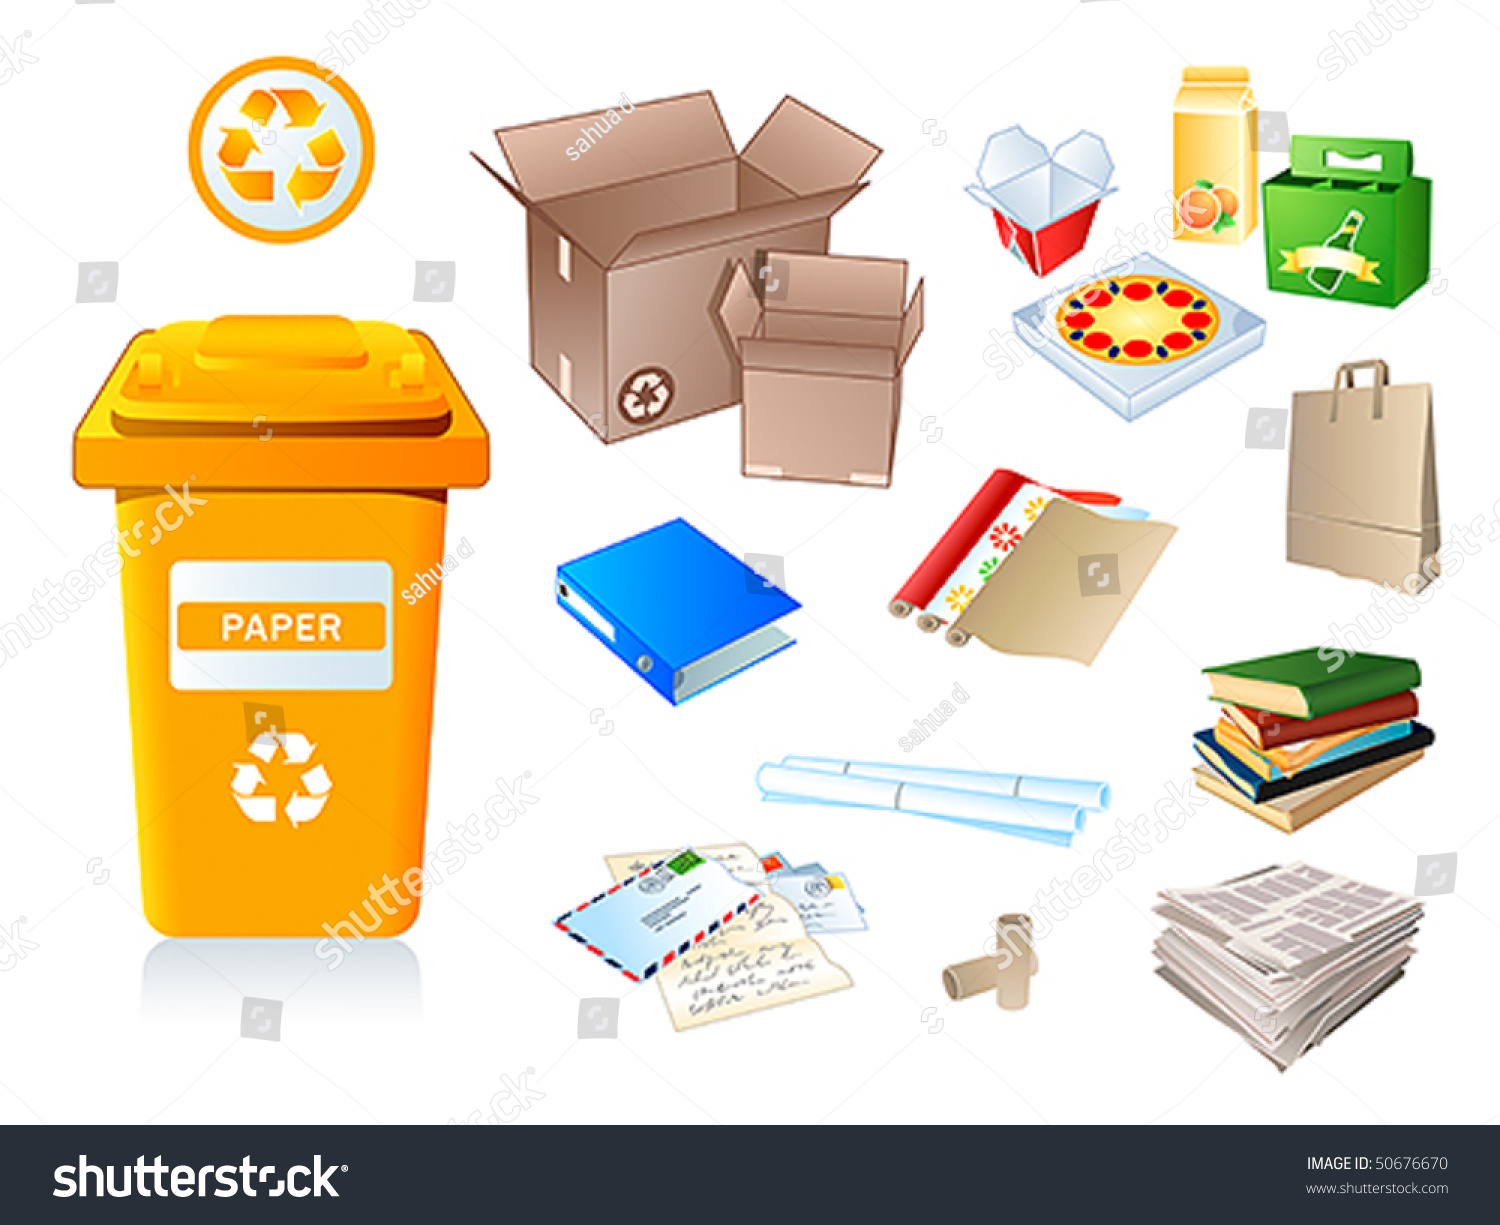 WastePlan Waste Management & Recycling Services